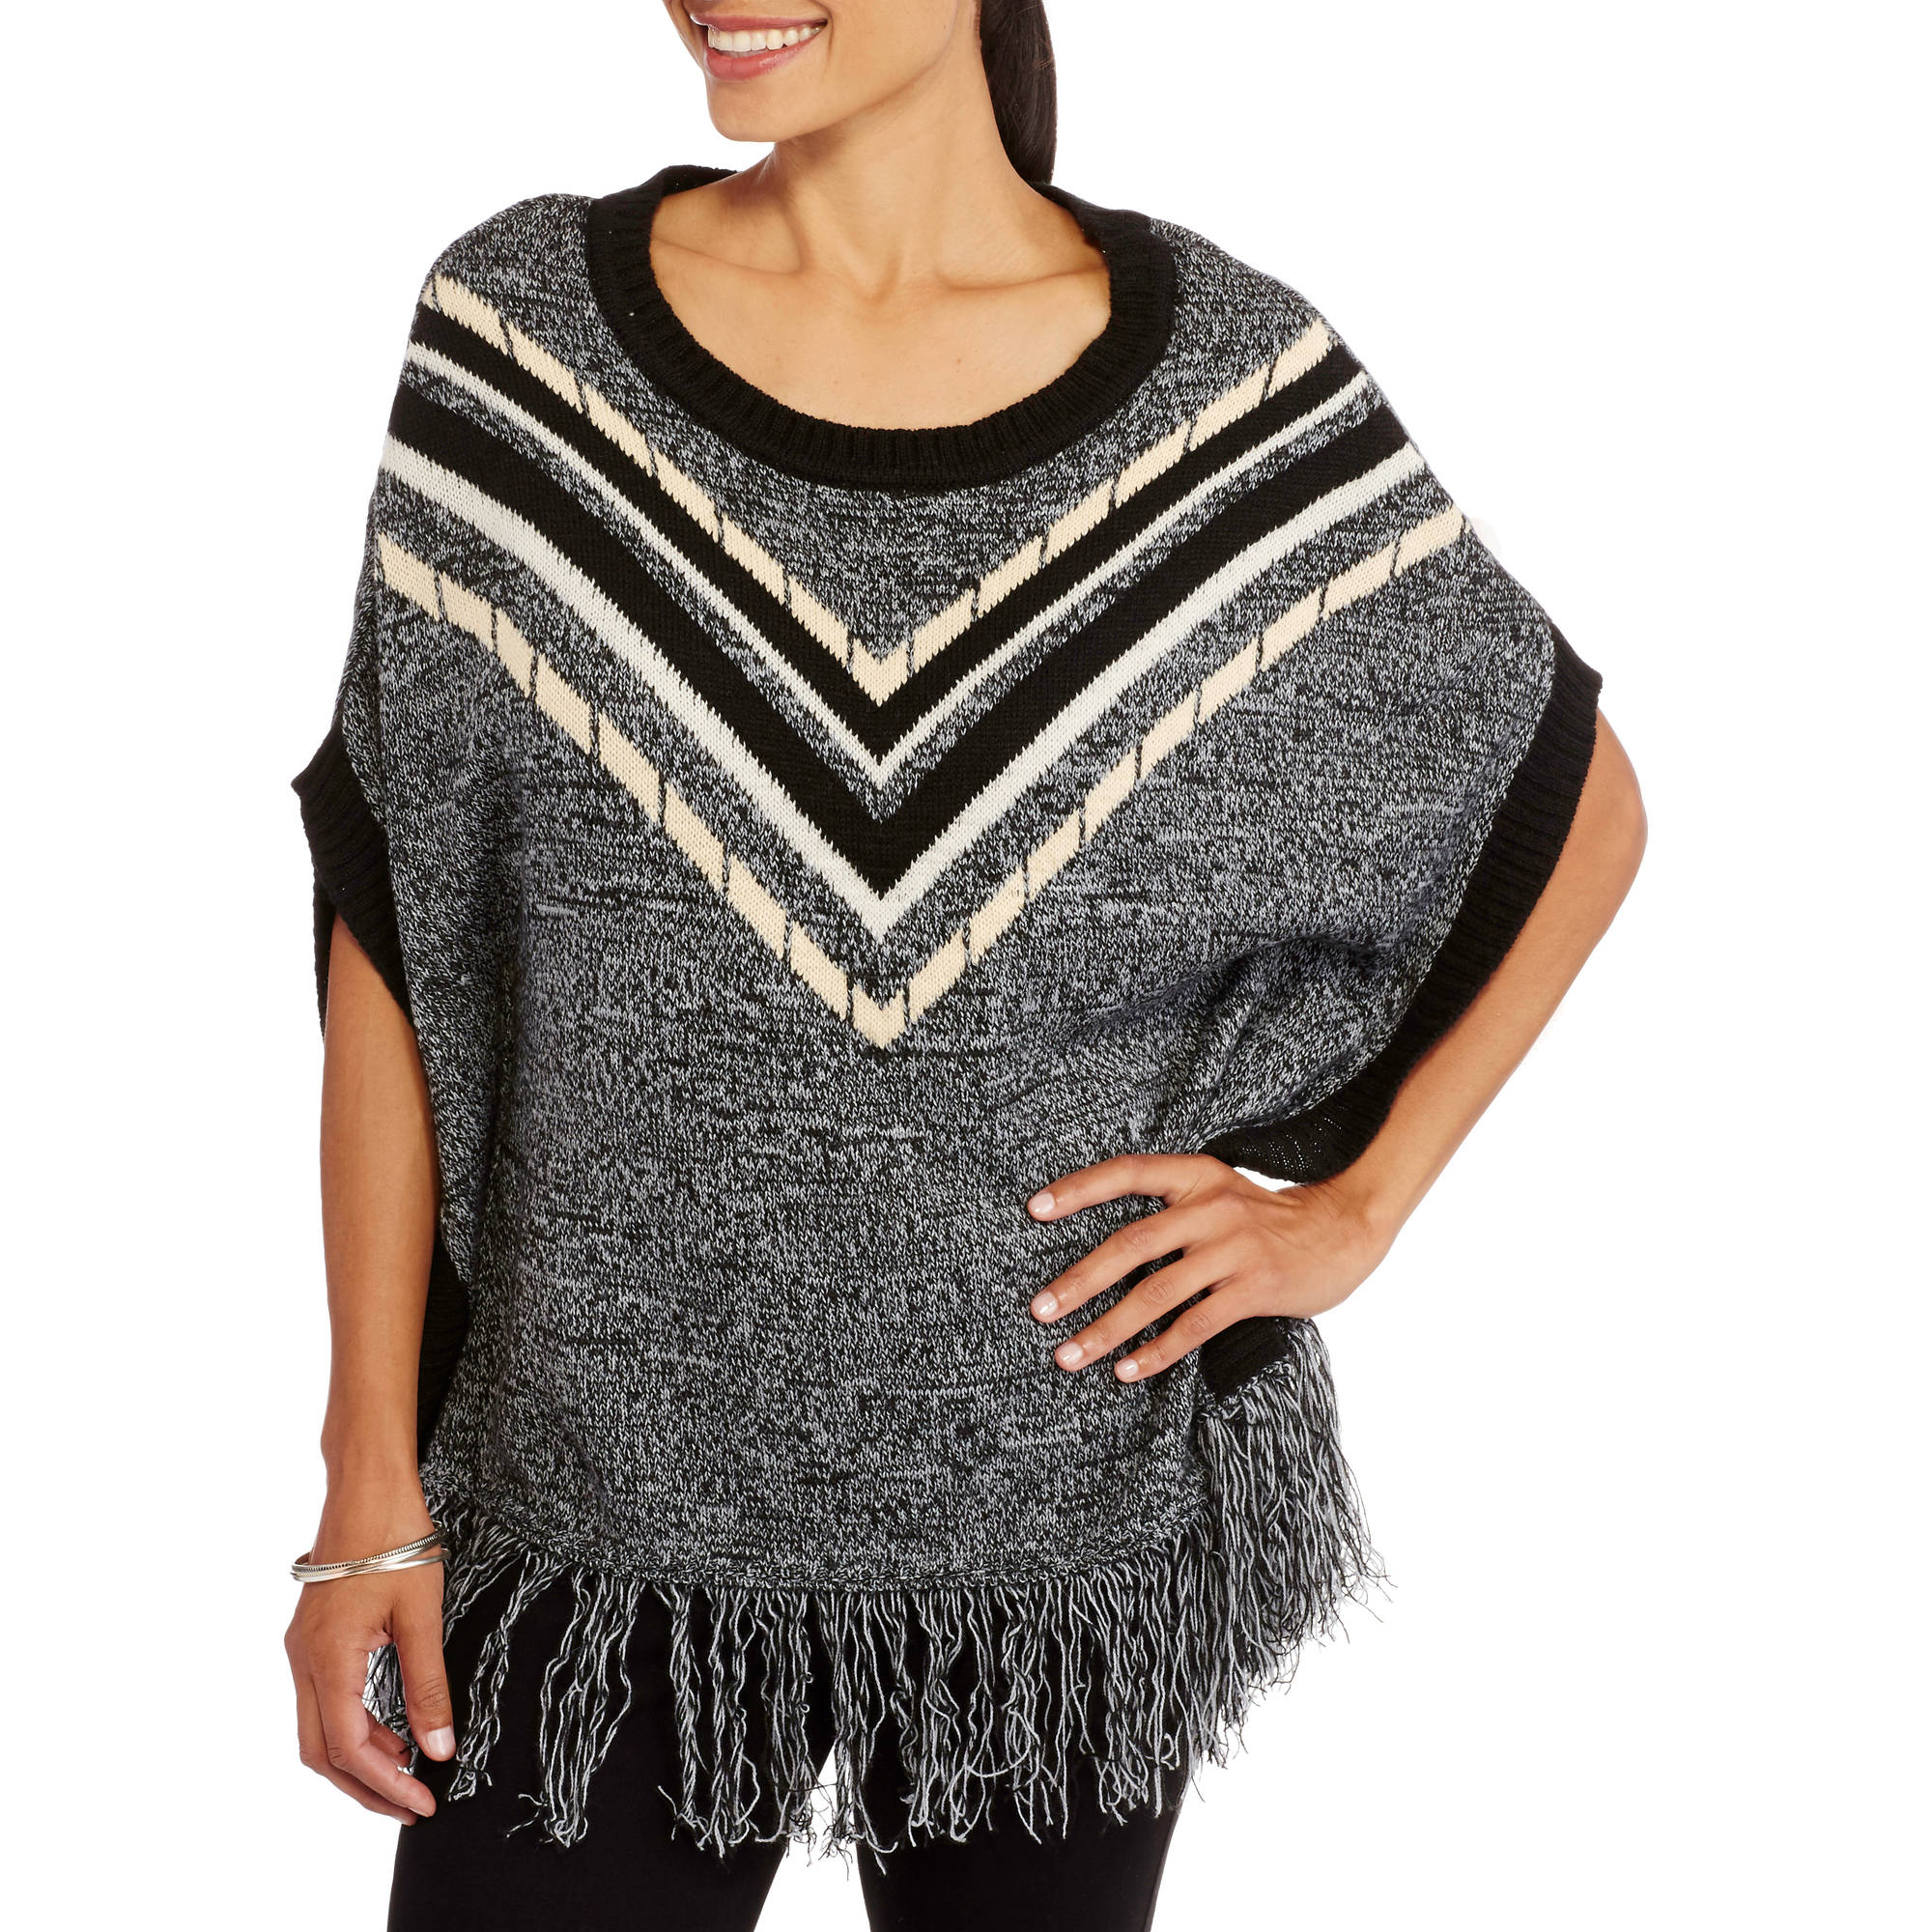 Samantha Rose Women's Crew Neck Poncho with Fringe